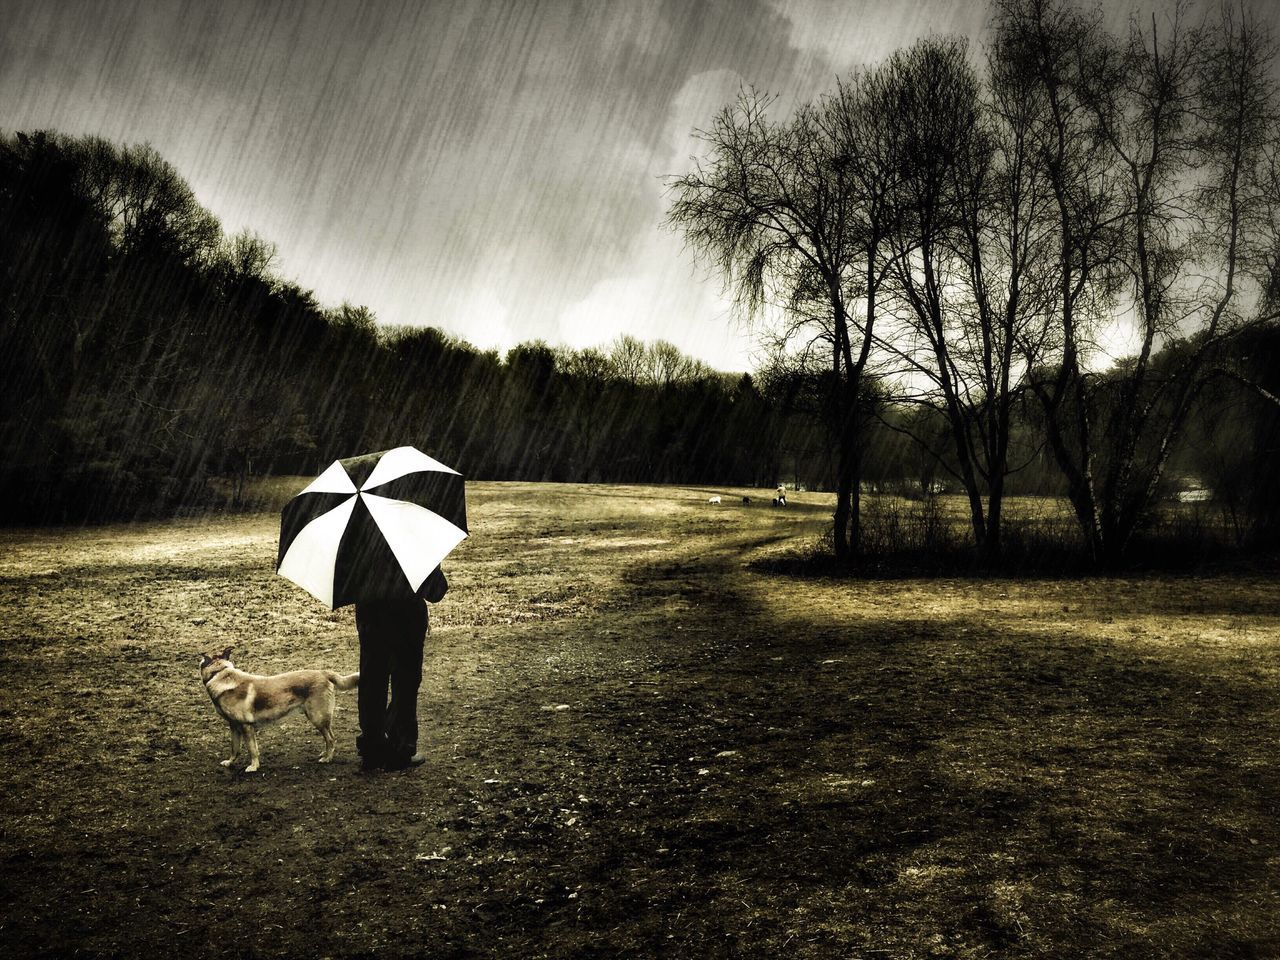 Rear View Of Man Holding Umbrella And Standing With Dog On Field During Monsoon